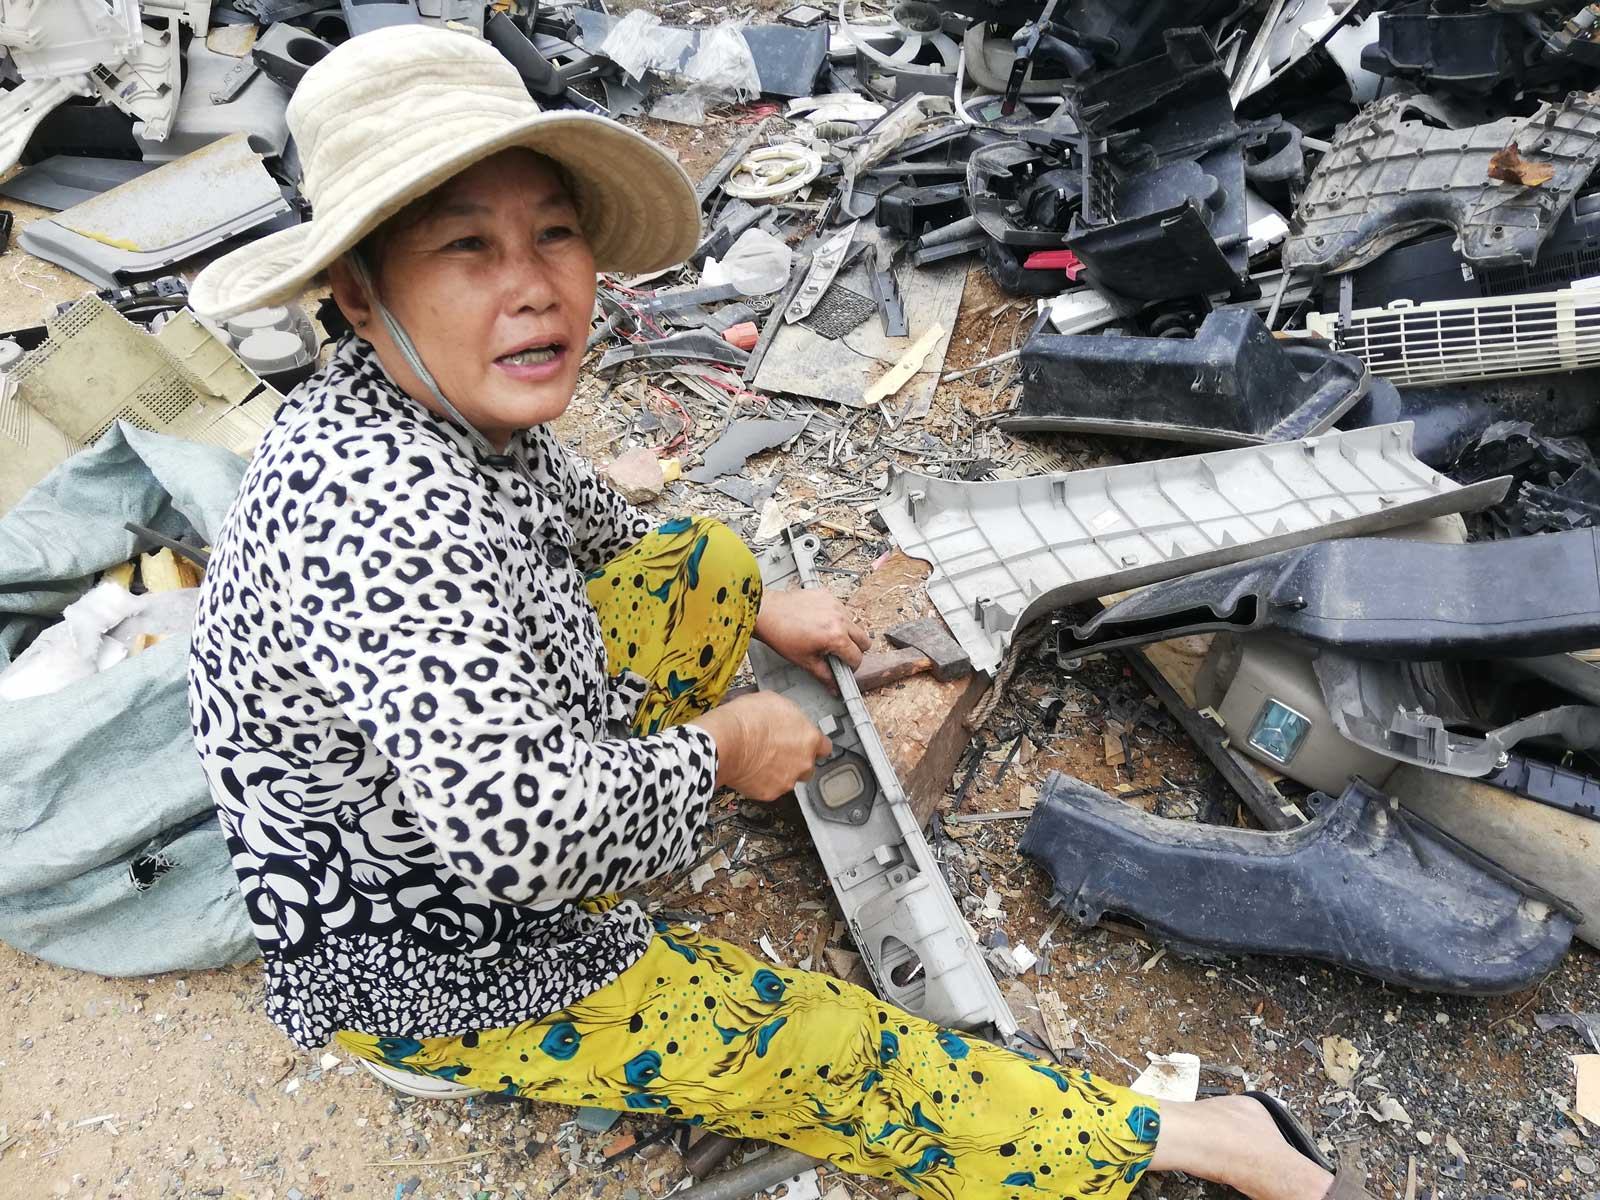 Phnom Penh recycler Mae Kamouy preparing plastic for reuse. Photo: Evie Breese